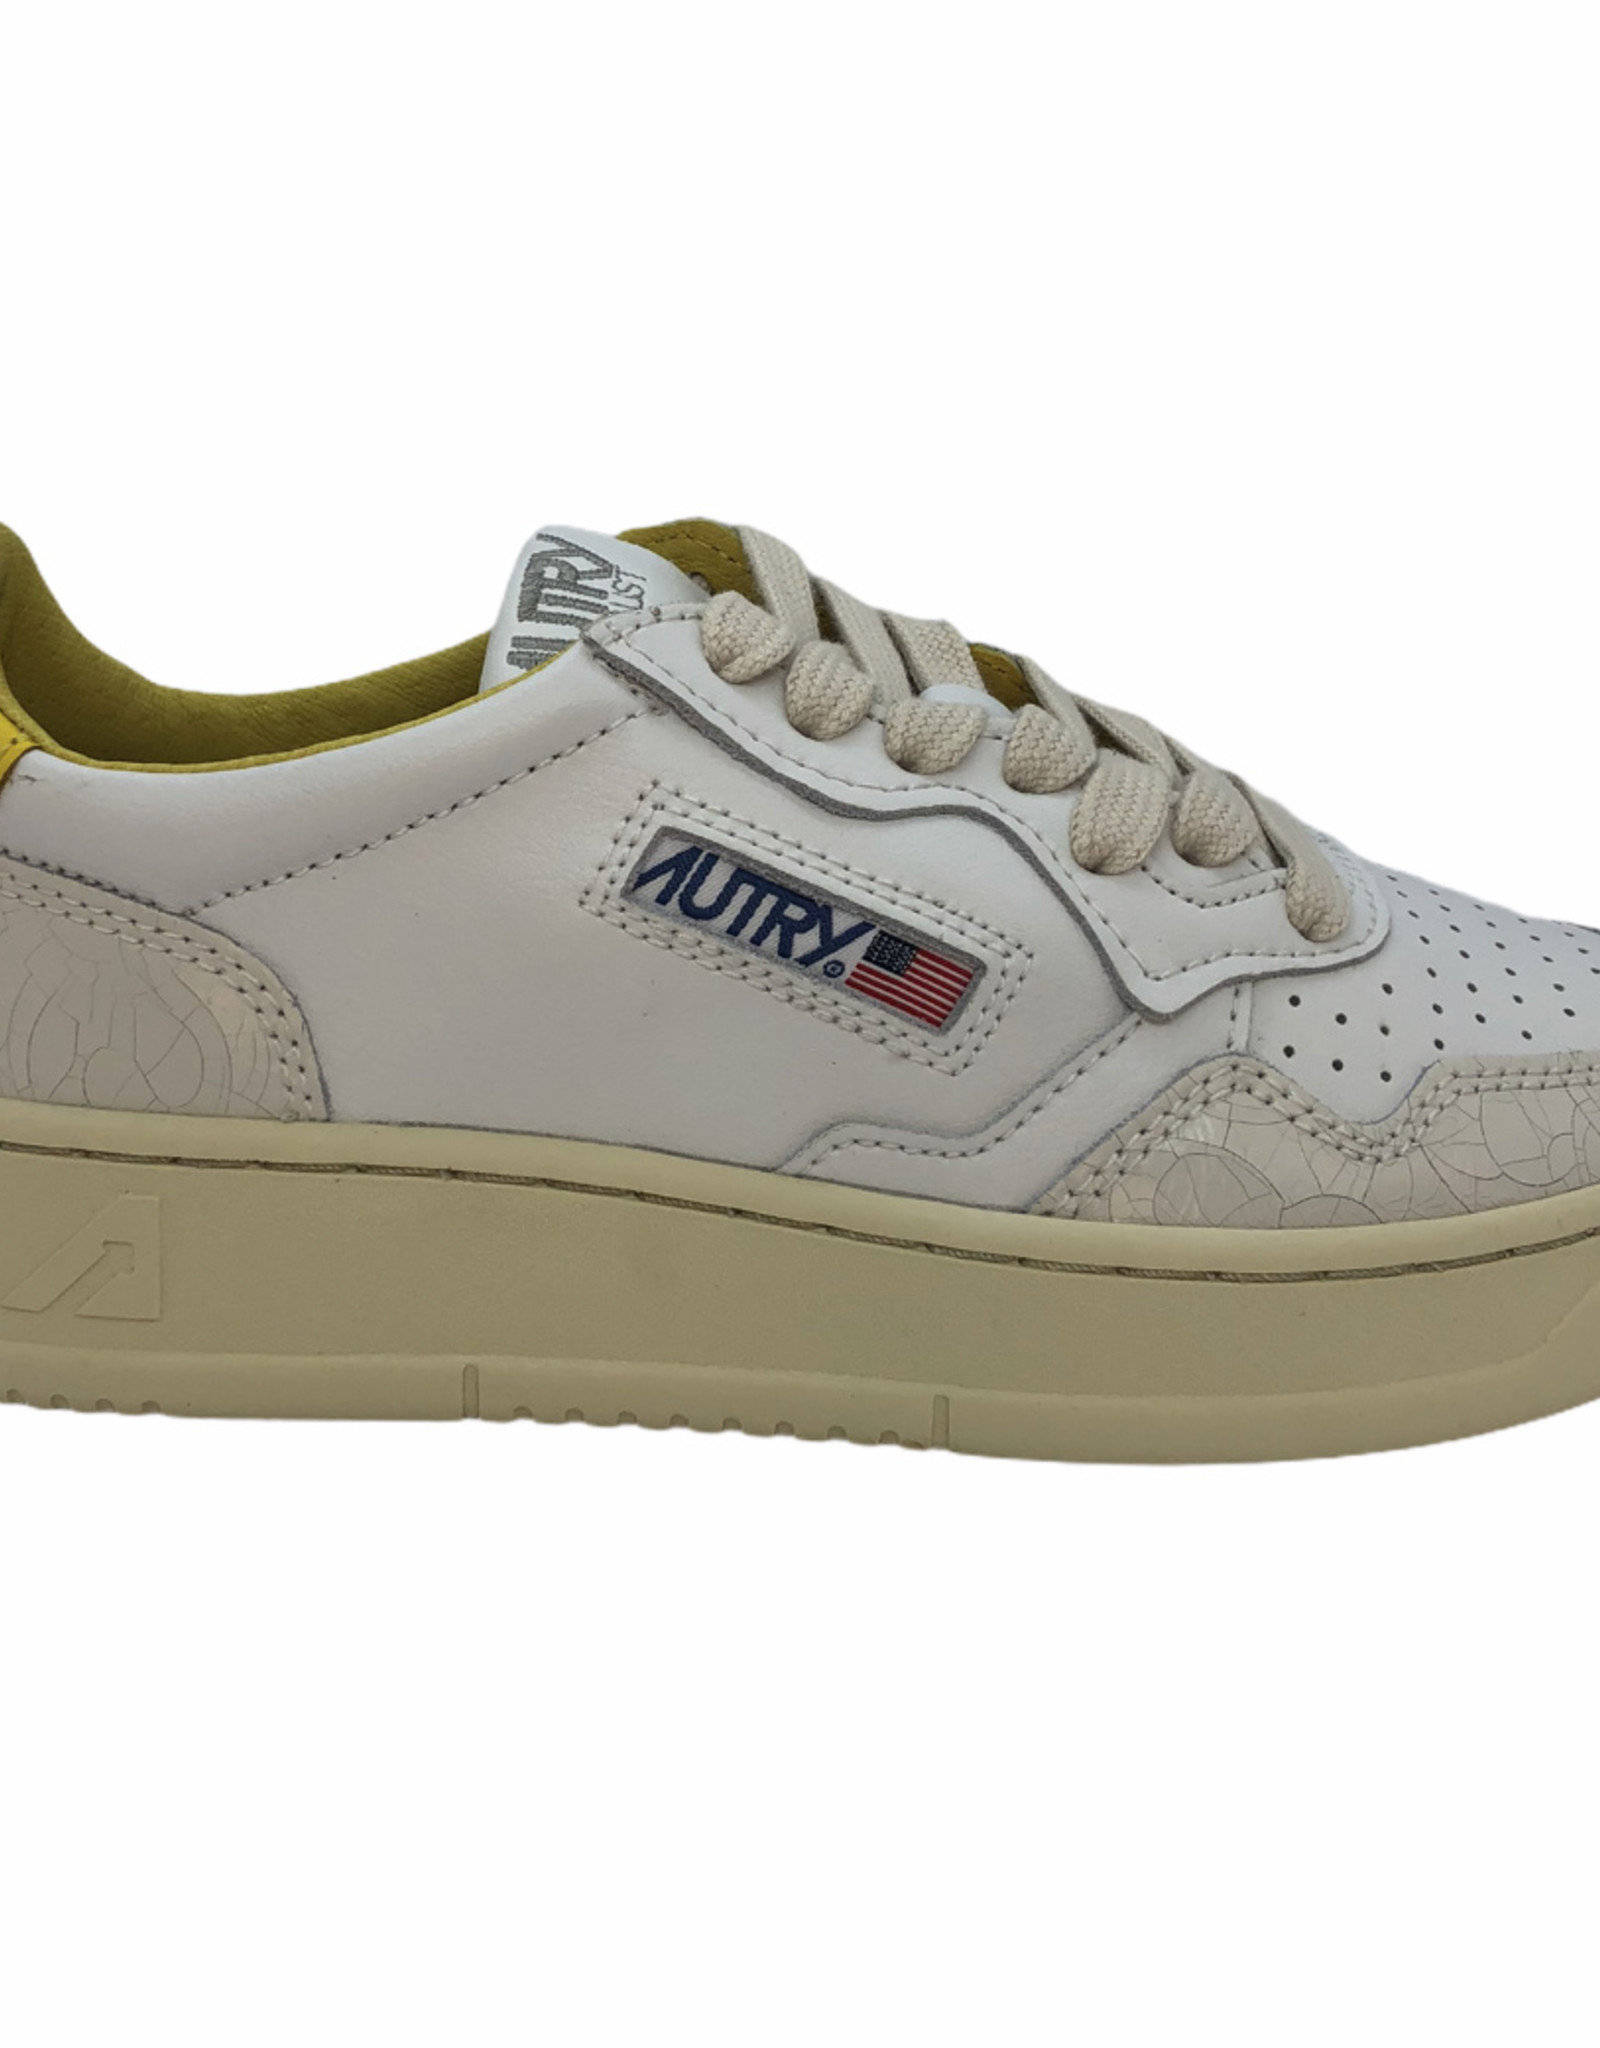 Autry leather crack white/yellow